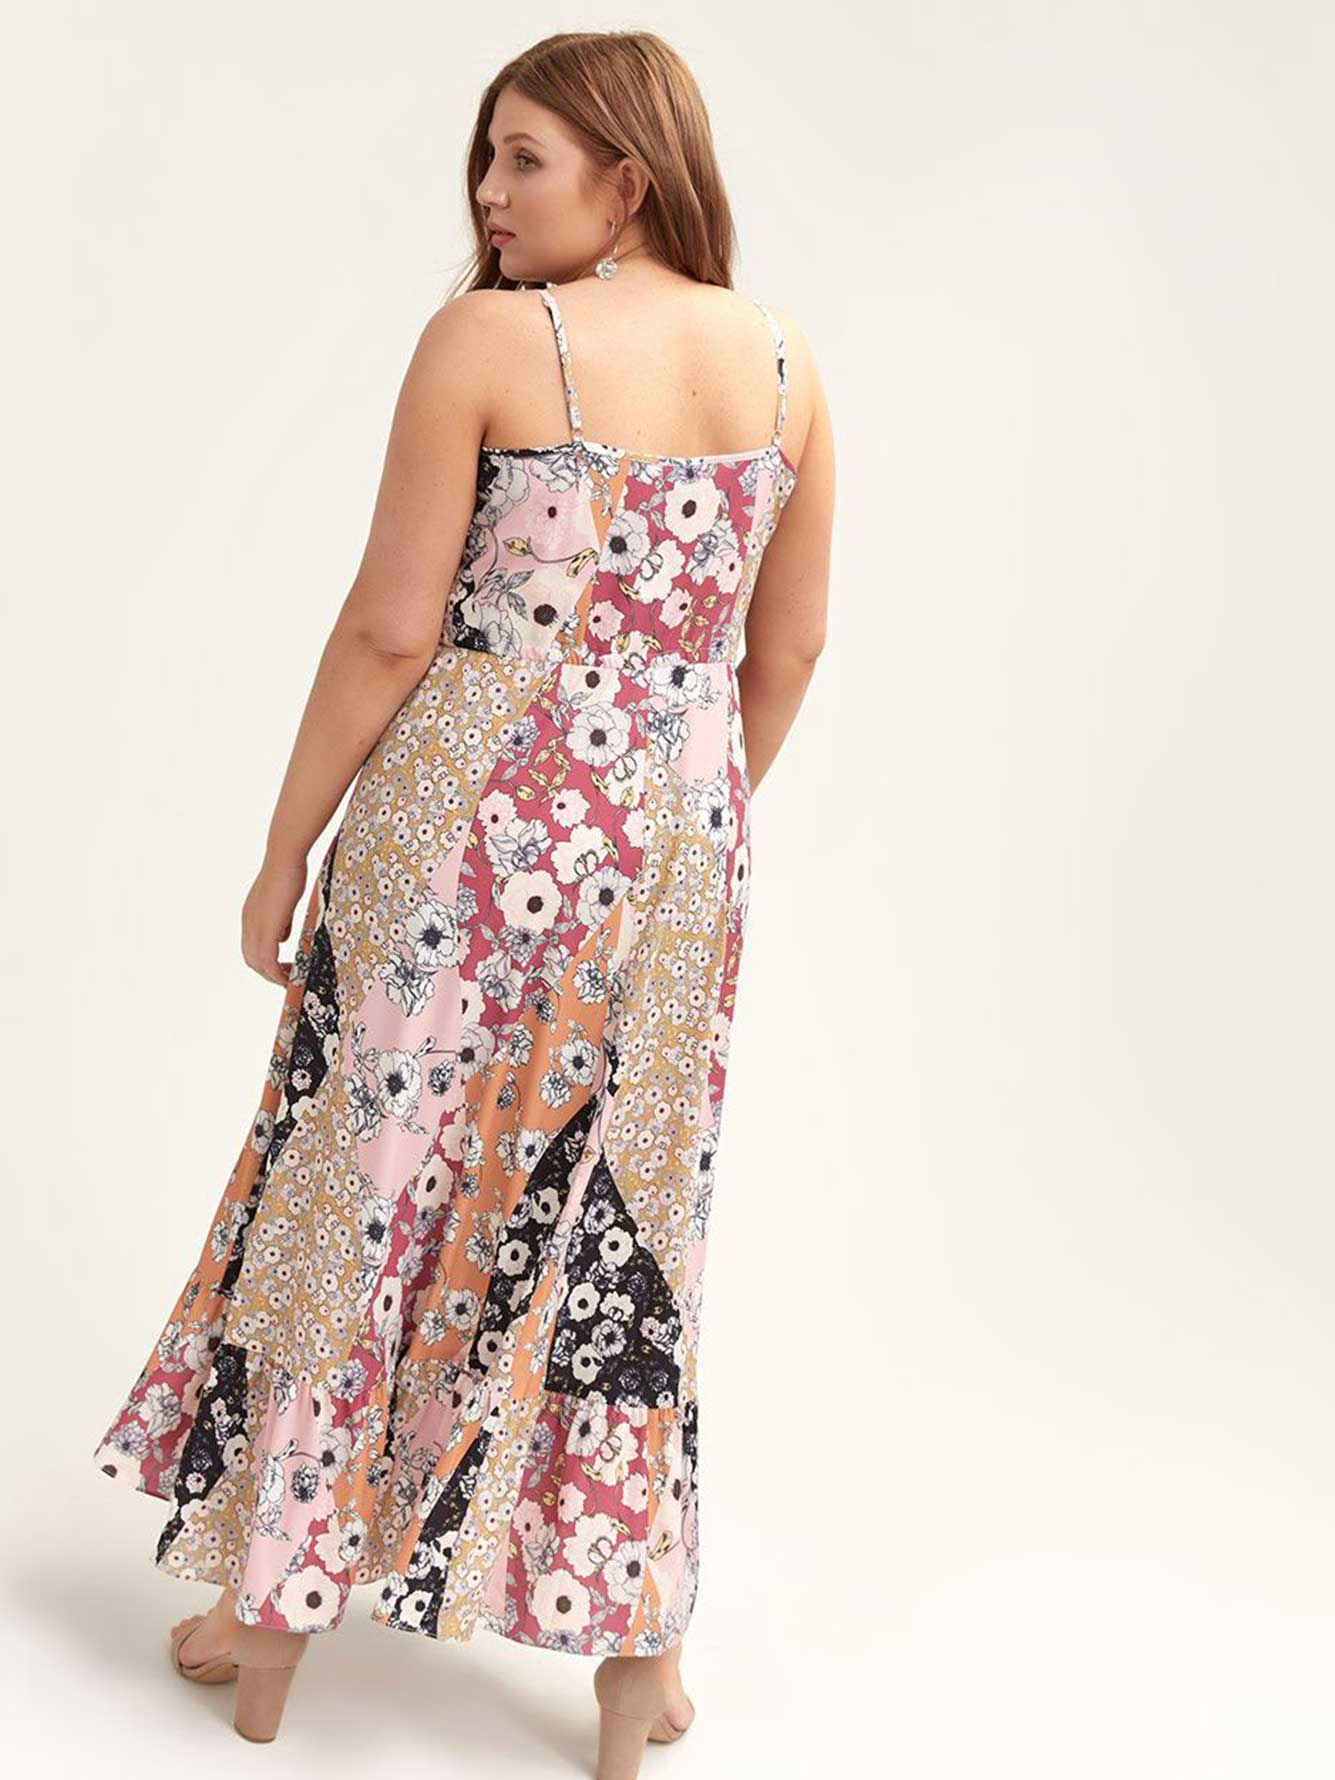 Maxi Dress with Floral Patchwork Print - City Chic